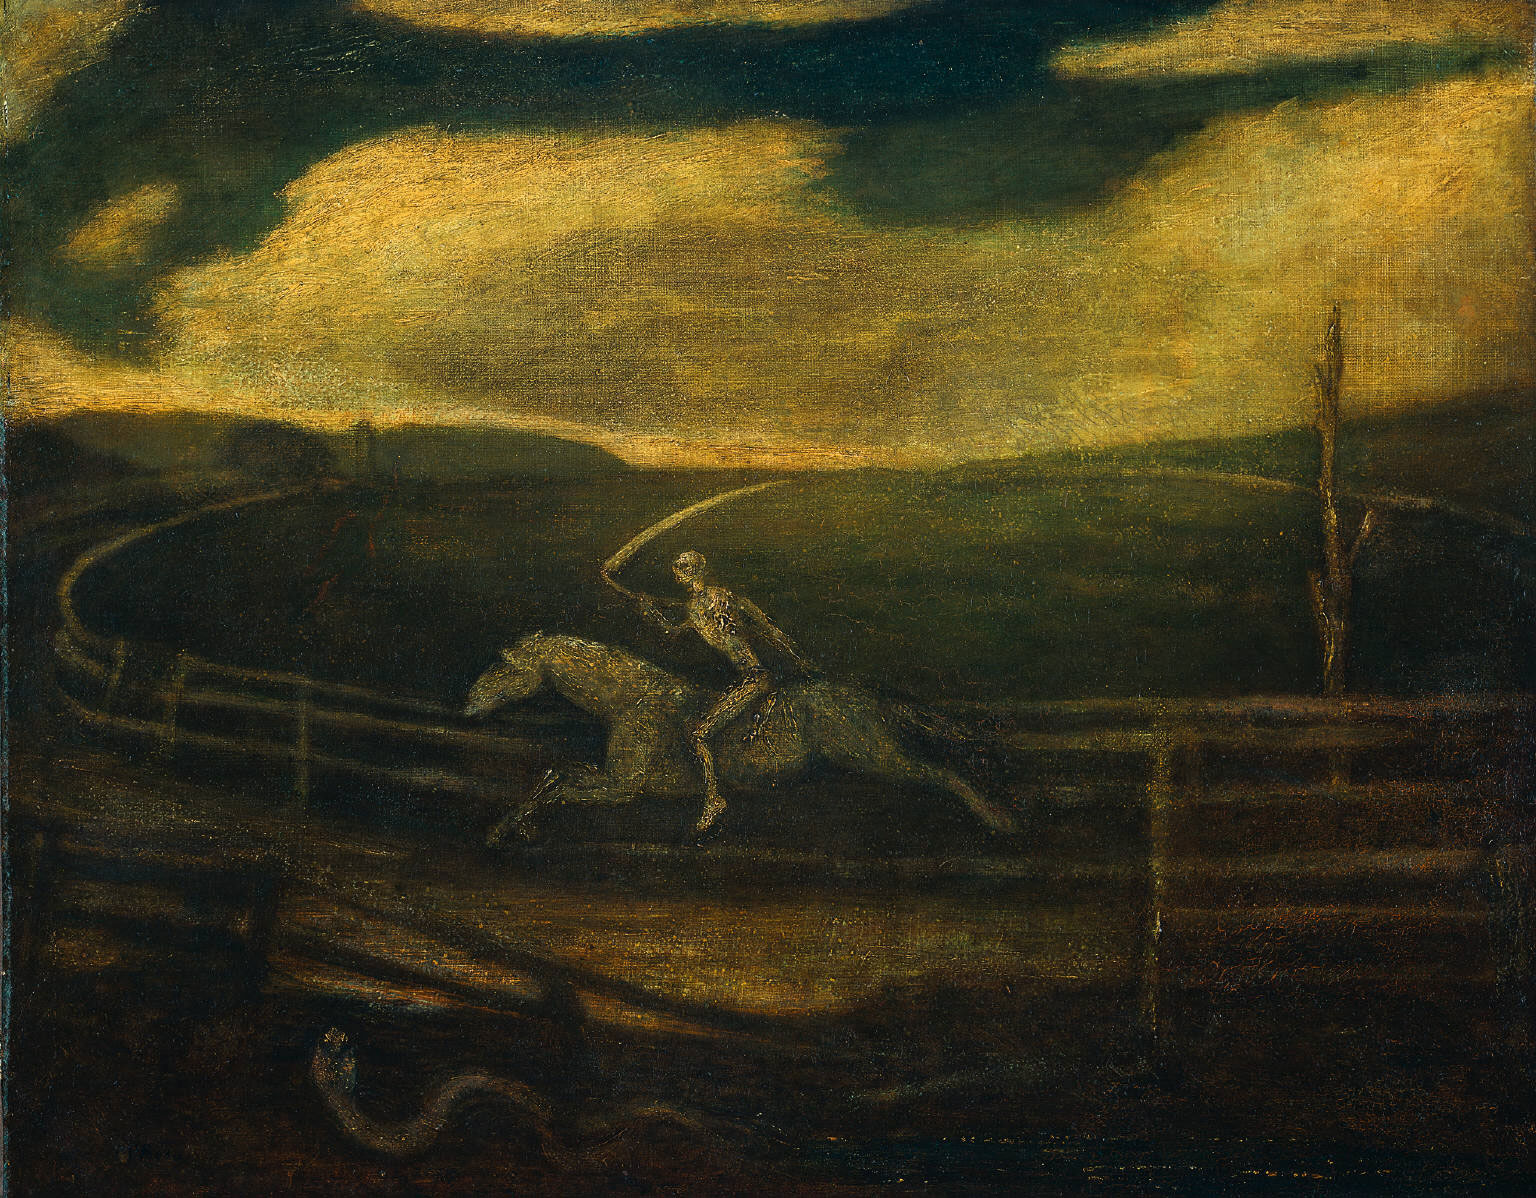 Albert Pinkham Ryder: The Race Track (Death on a Pale Horse), 1900